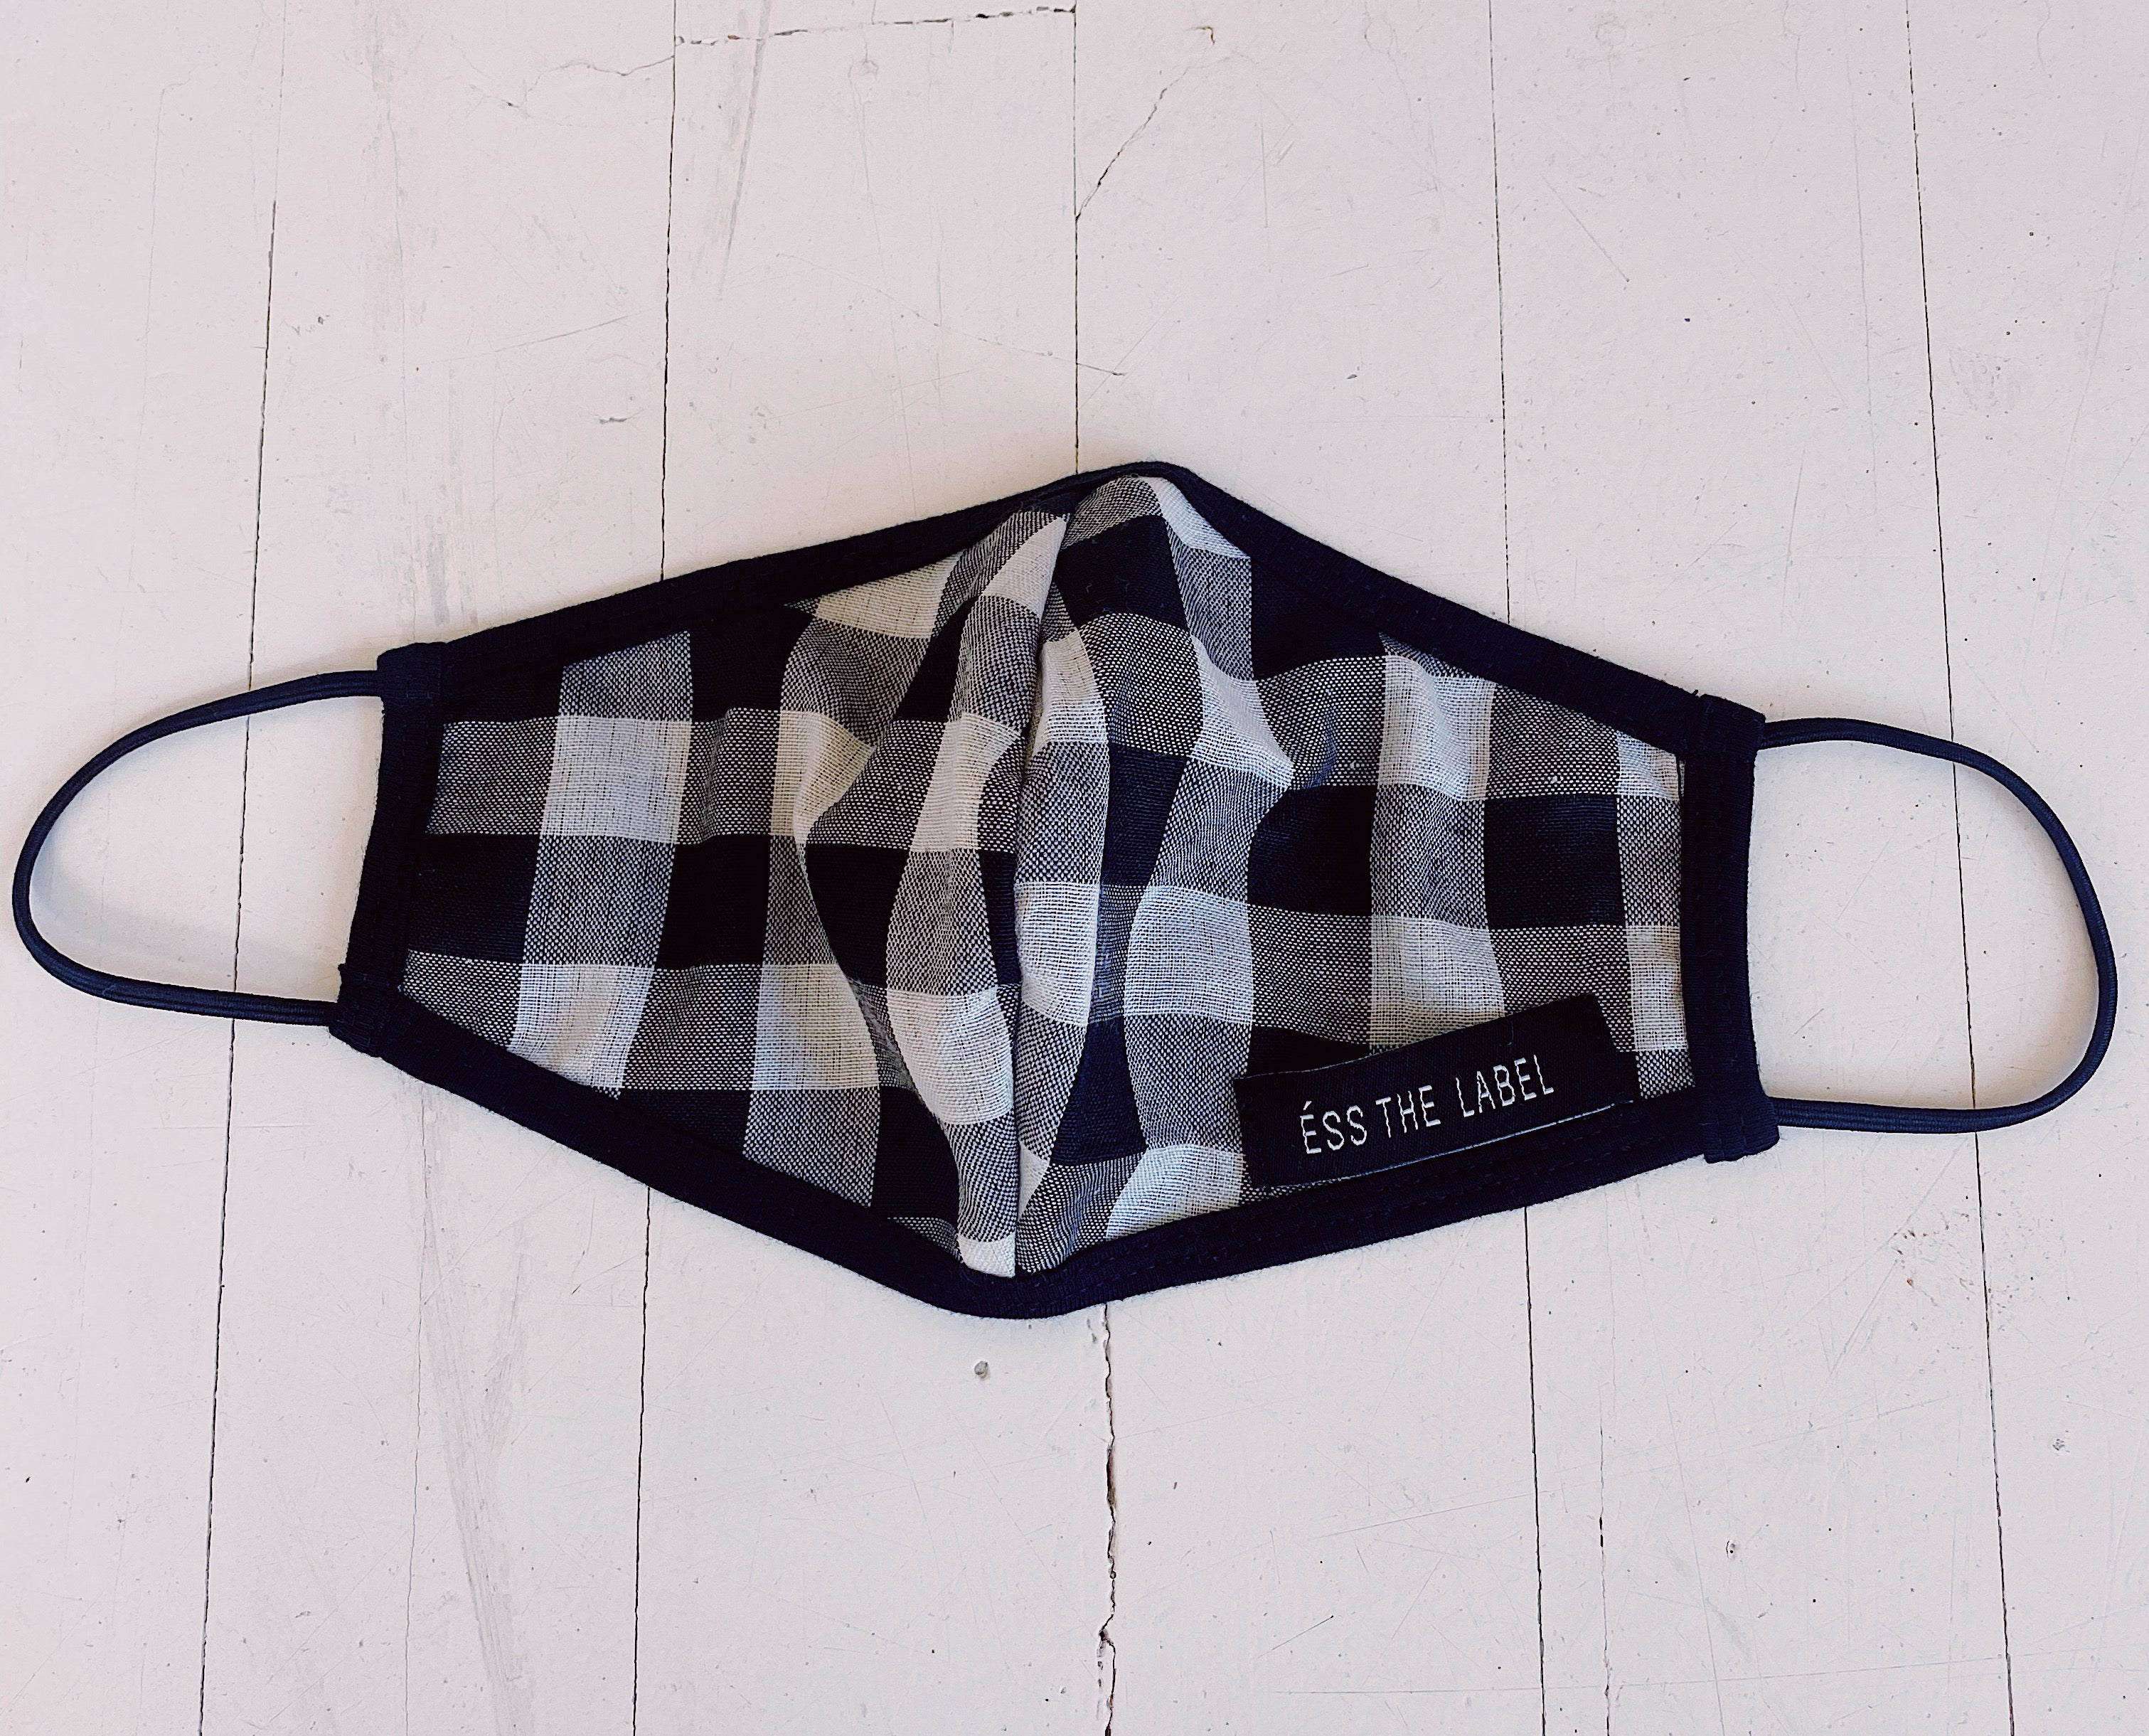 ÉSS THE LABEL Cotton Gingham Face Mask - Gingham